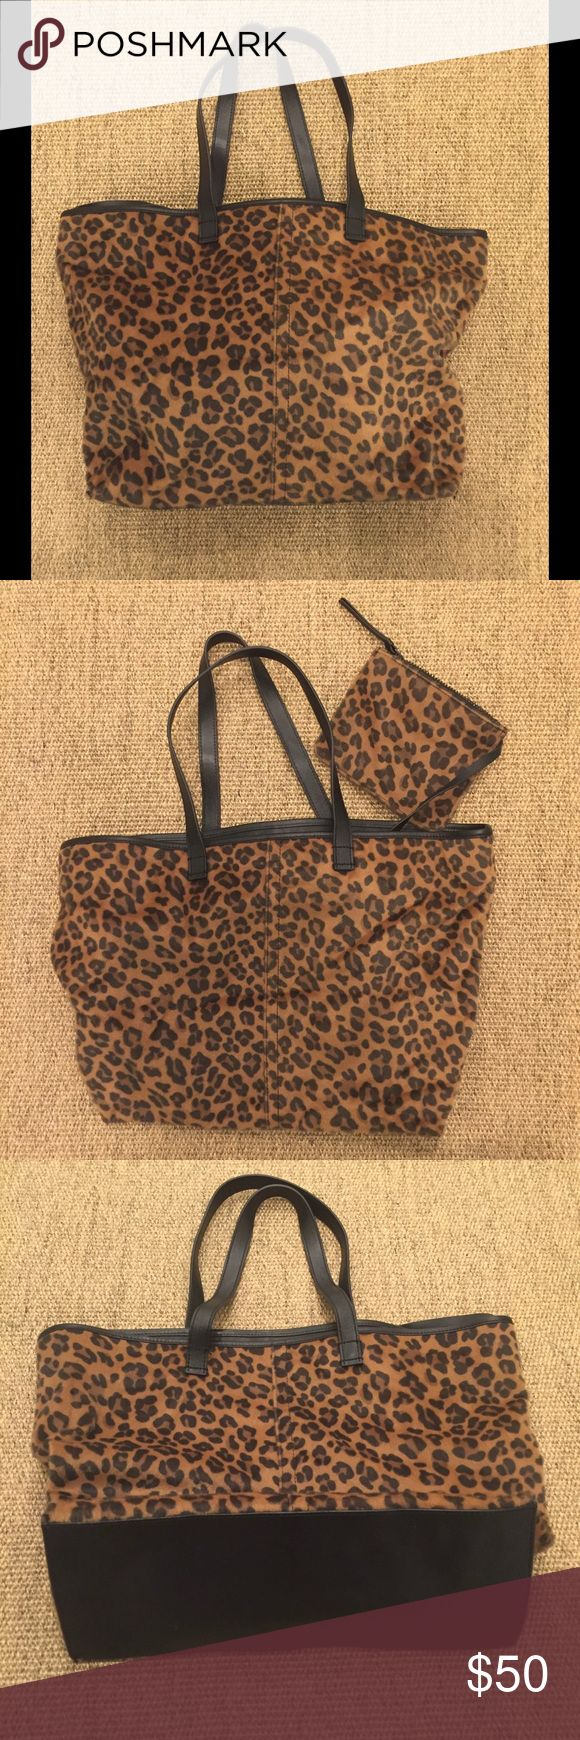 & Other Stories Leopard Print Tote Classic tote bag, leopard print with leather bottom and straps. Mini matching makeup bag attached inside. & Other Stories Bags Totes